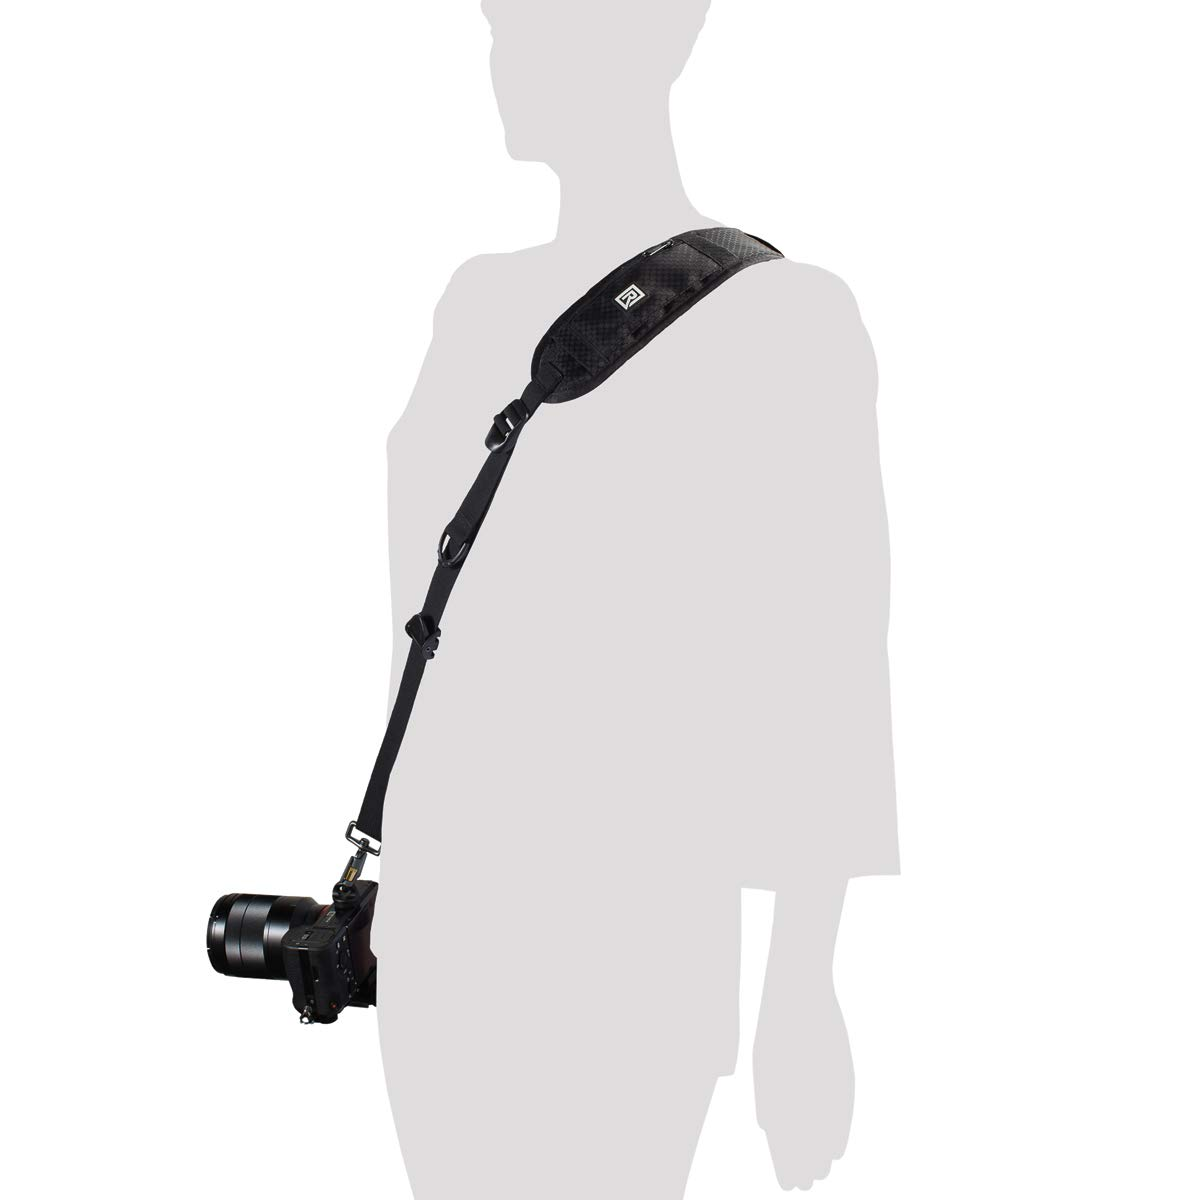 BLACKRAPID Classic Retro (RS4) Camera Strap, 1pc of Safety Tether Included - 10th Anniversary Edition by BlackRapid (Image #5)